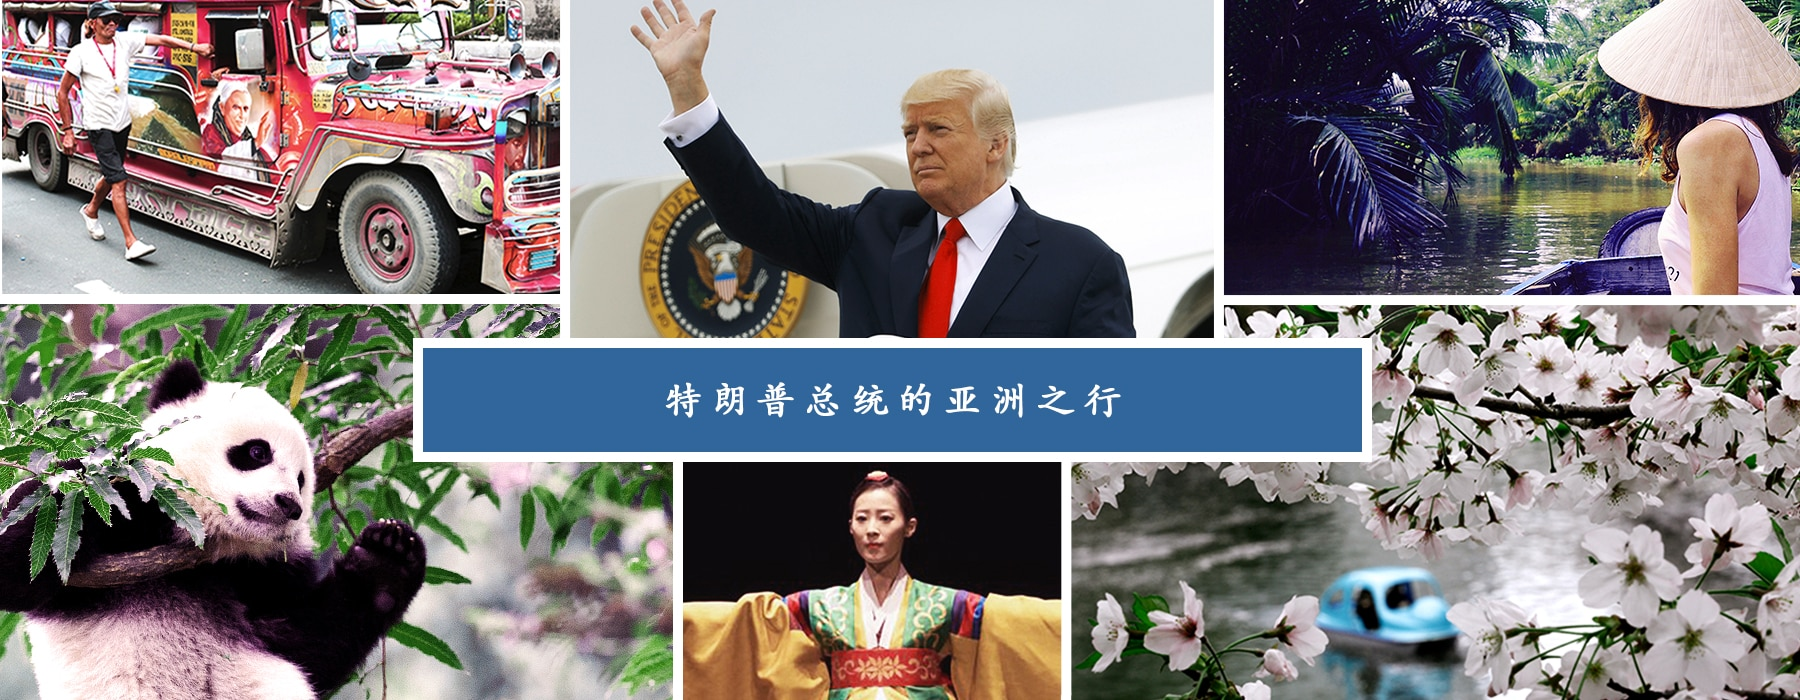 Collage of images of painted bus, President Trump, woman by river, panda, costumed dancer and cherry blossoms (© AP Images, Korean Cultural Center Washington, D.C.)